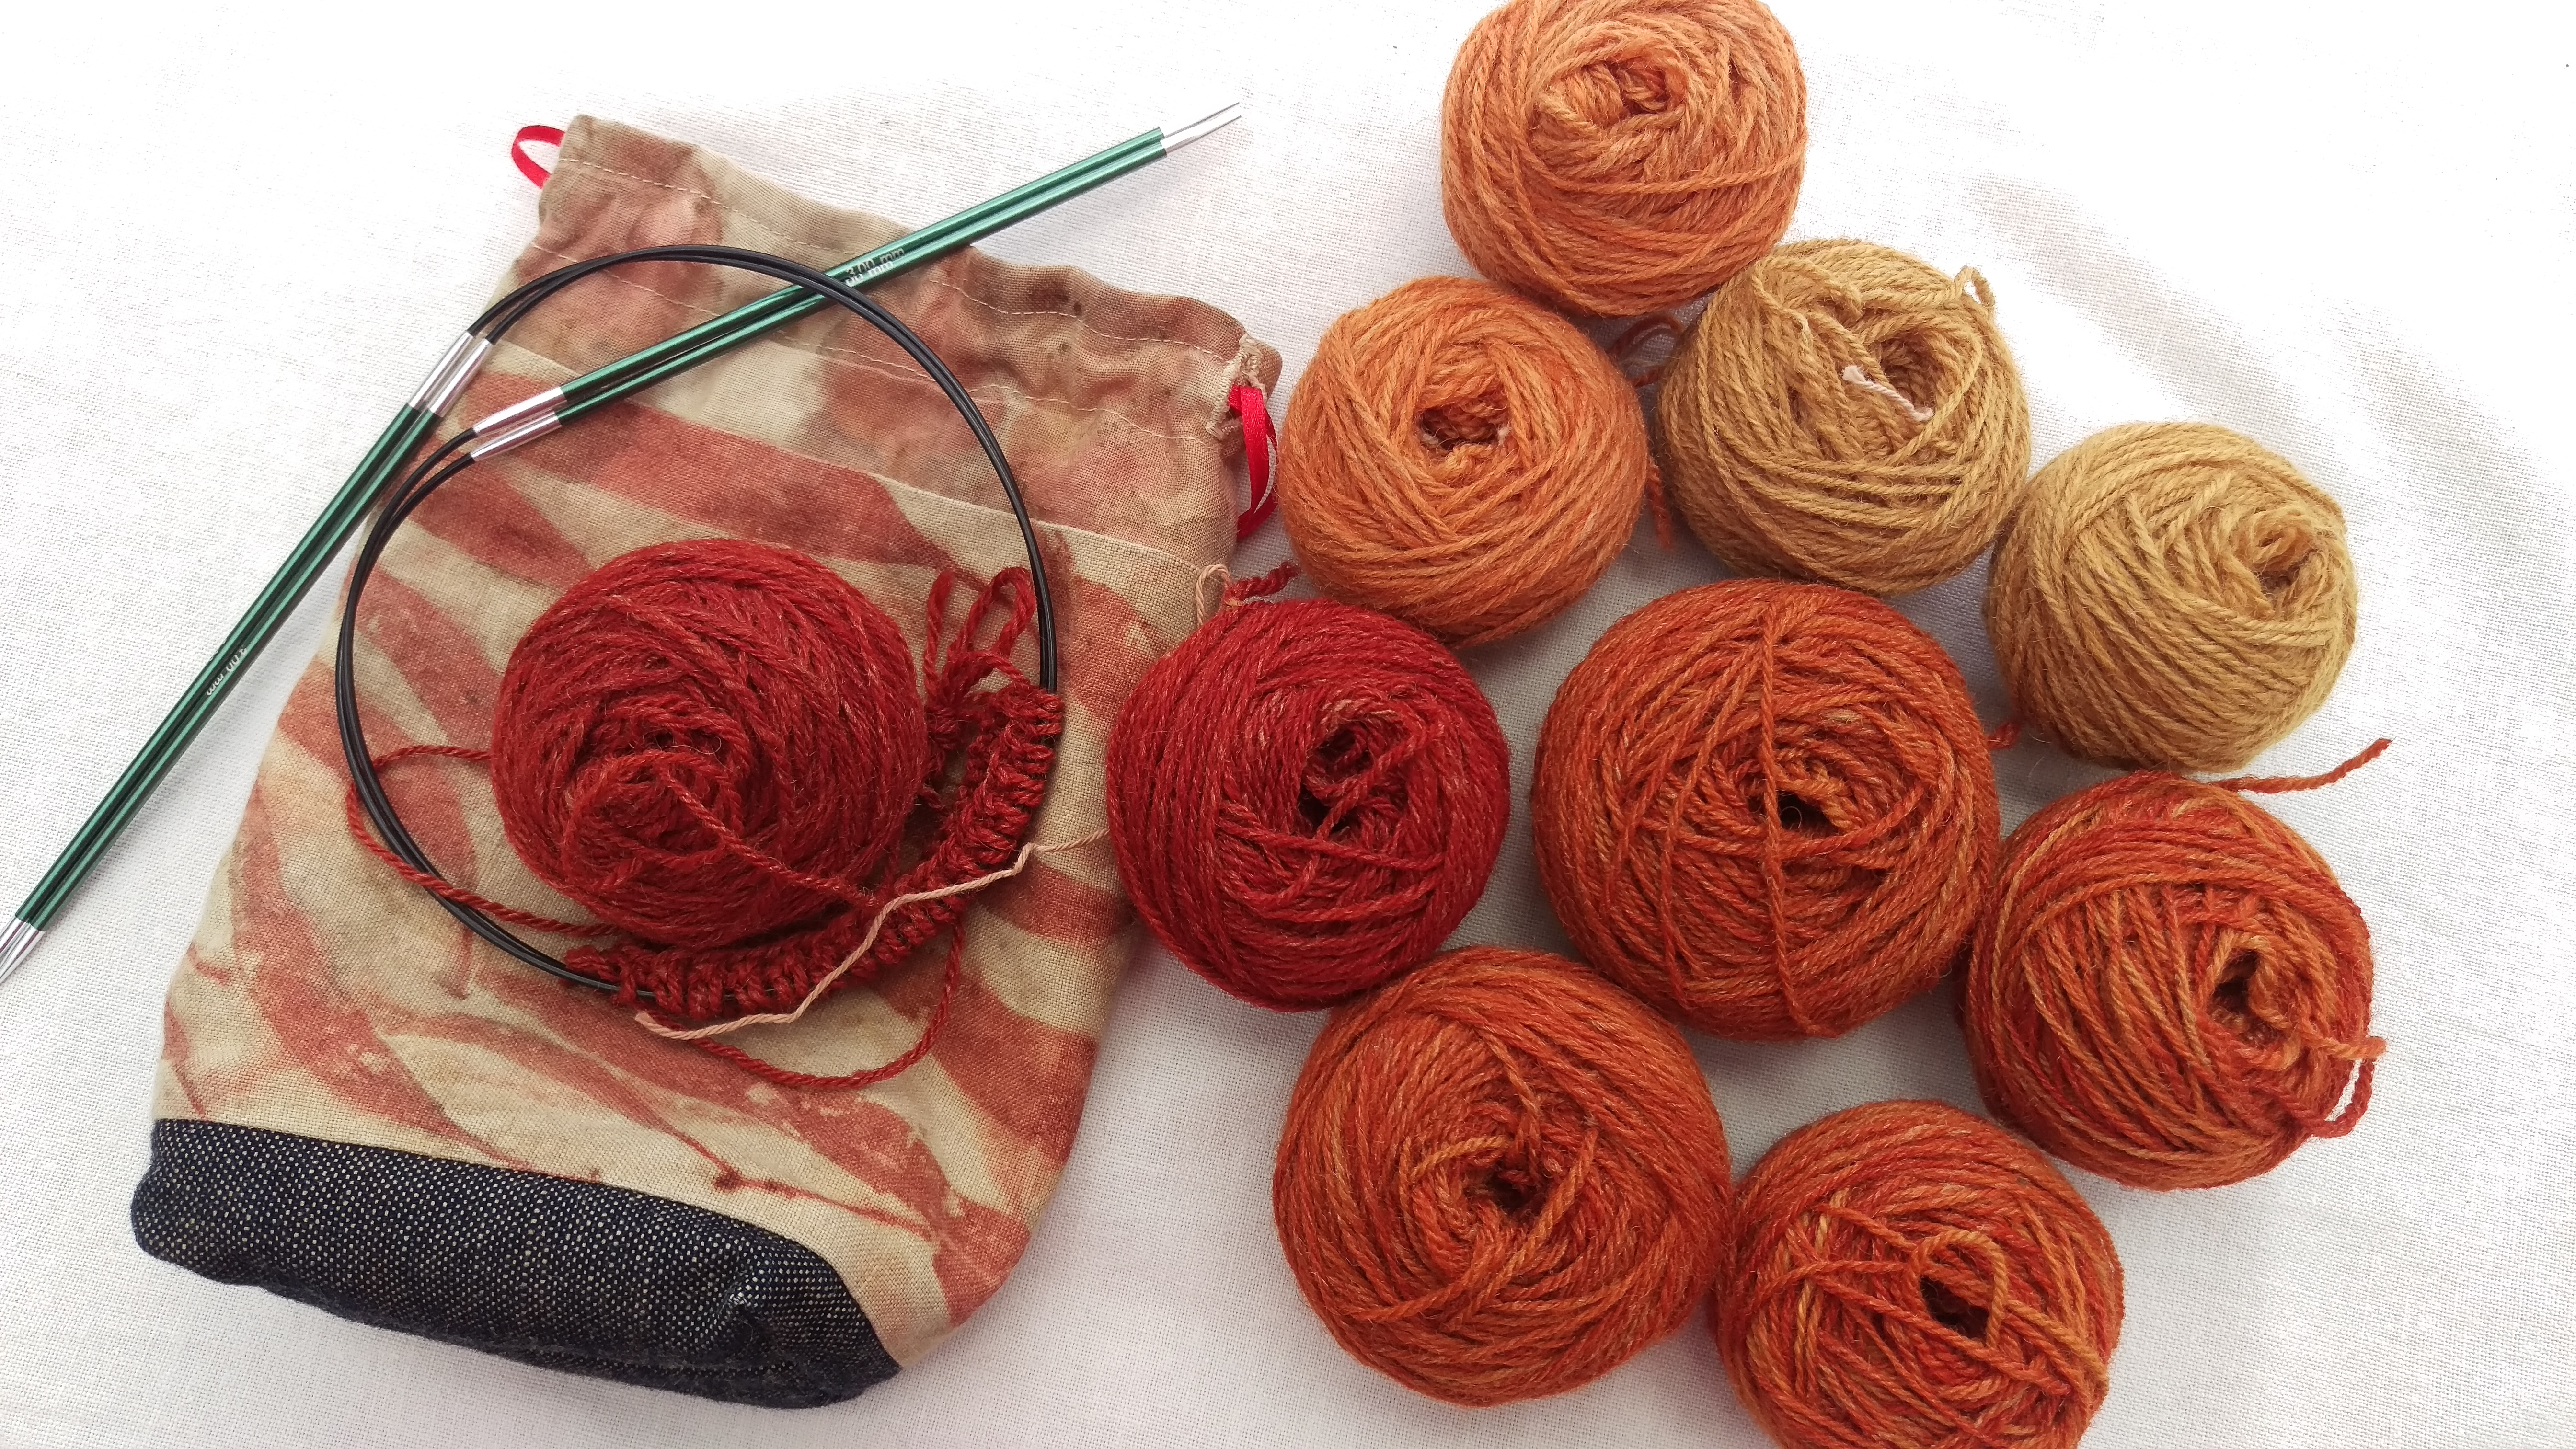 Best Way Join Yarn Knitting Dyeing And Knitting Suffolk Socks Local And Bespoke